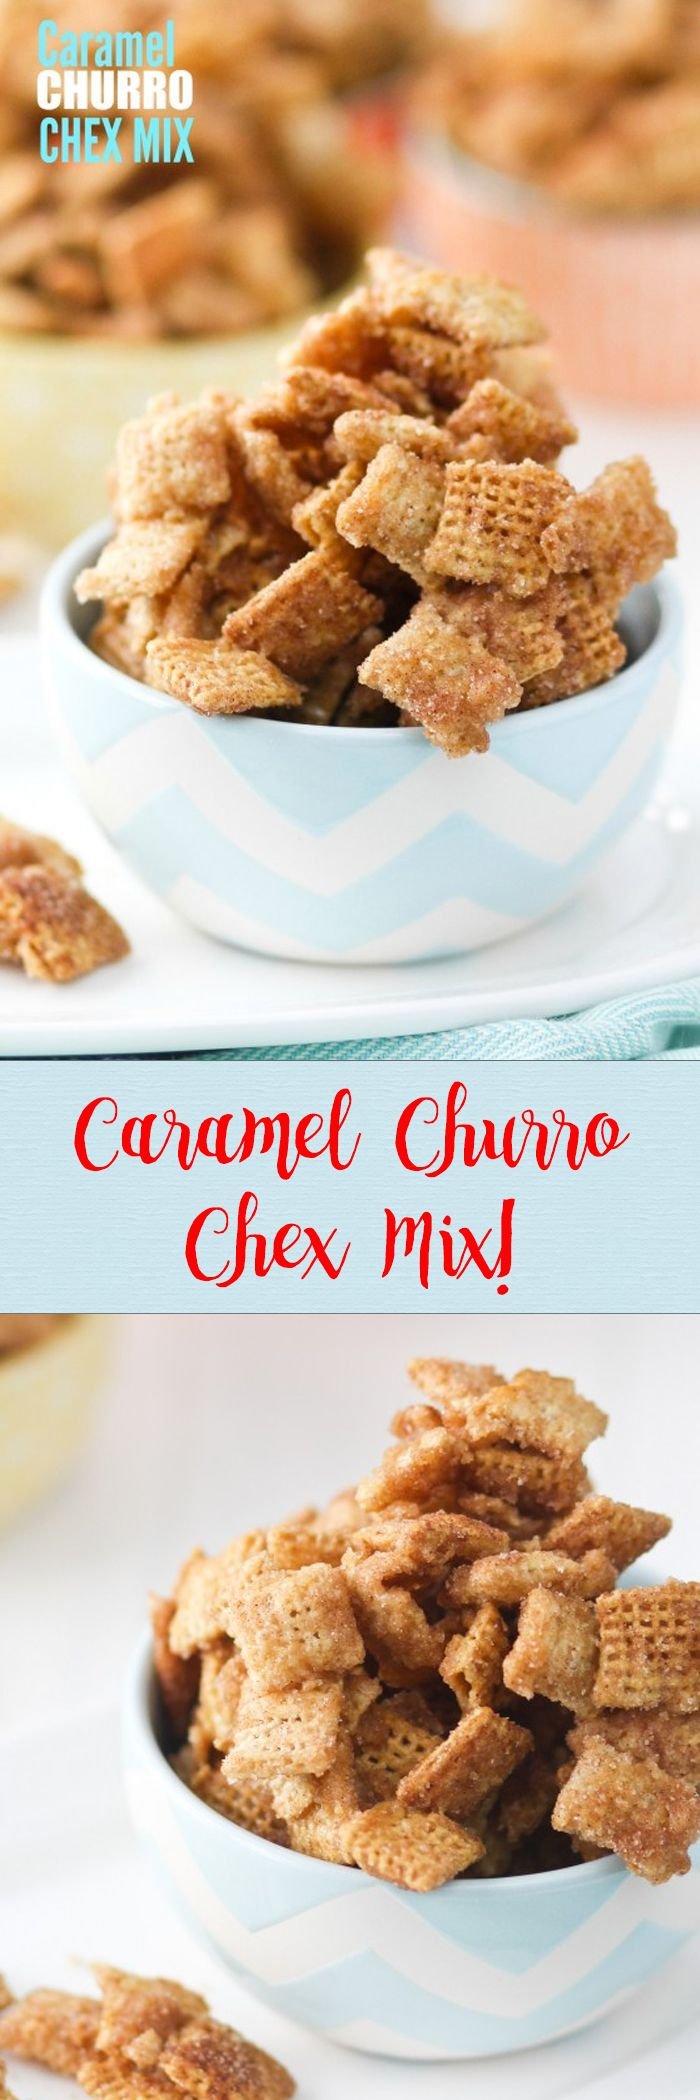 Caramel Churro Chex Mix -- everyone goes crazy for this stuff. It's so addictive! Going to put it in little tins for the teachers this year.